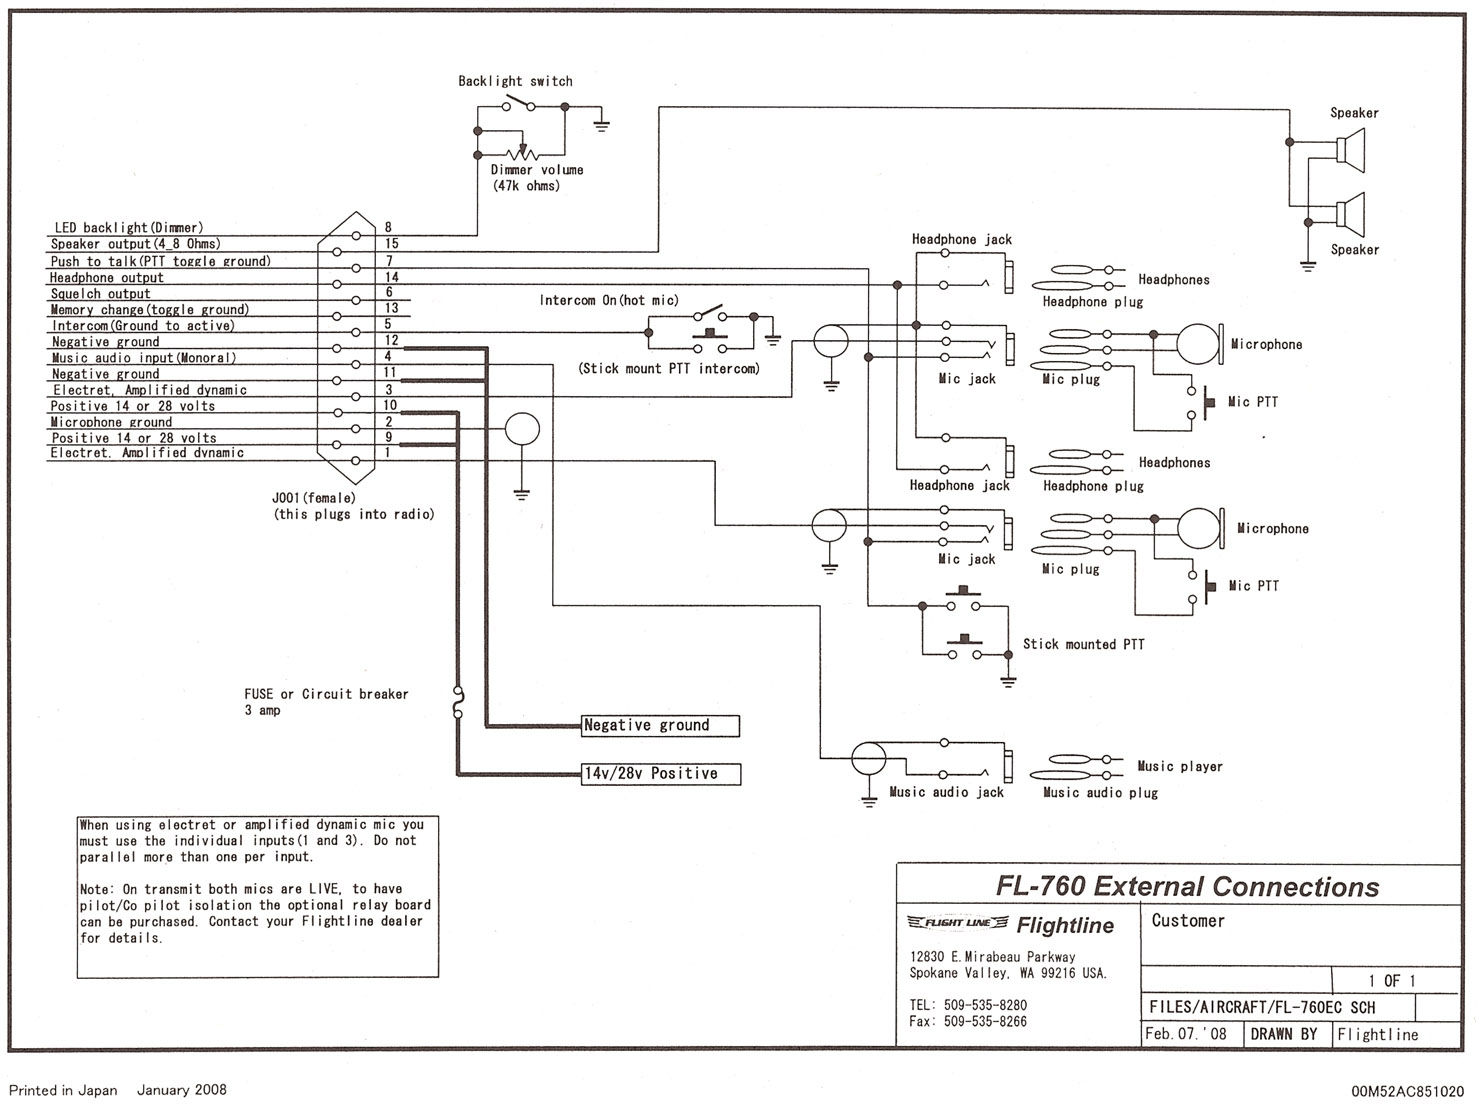 7hp Tecumseh Coil Wiring Diagram Library. Revtech Ignition Module Wiring Diagram Electronic 7hp Tecumseh Coil. Wiring. Revtech Wire Harness Diagram At Scoala.co